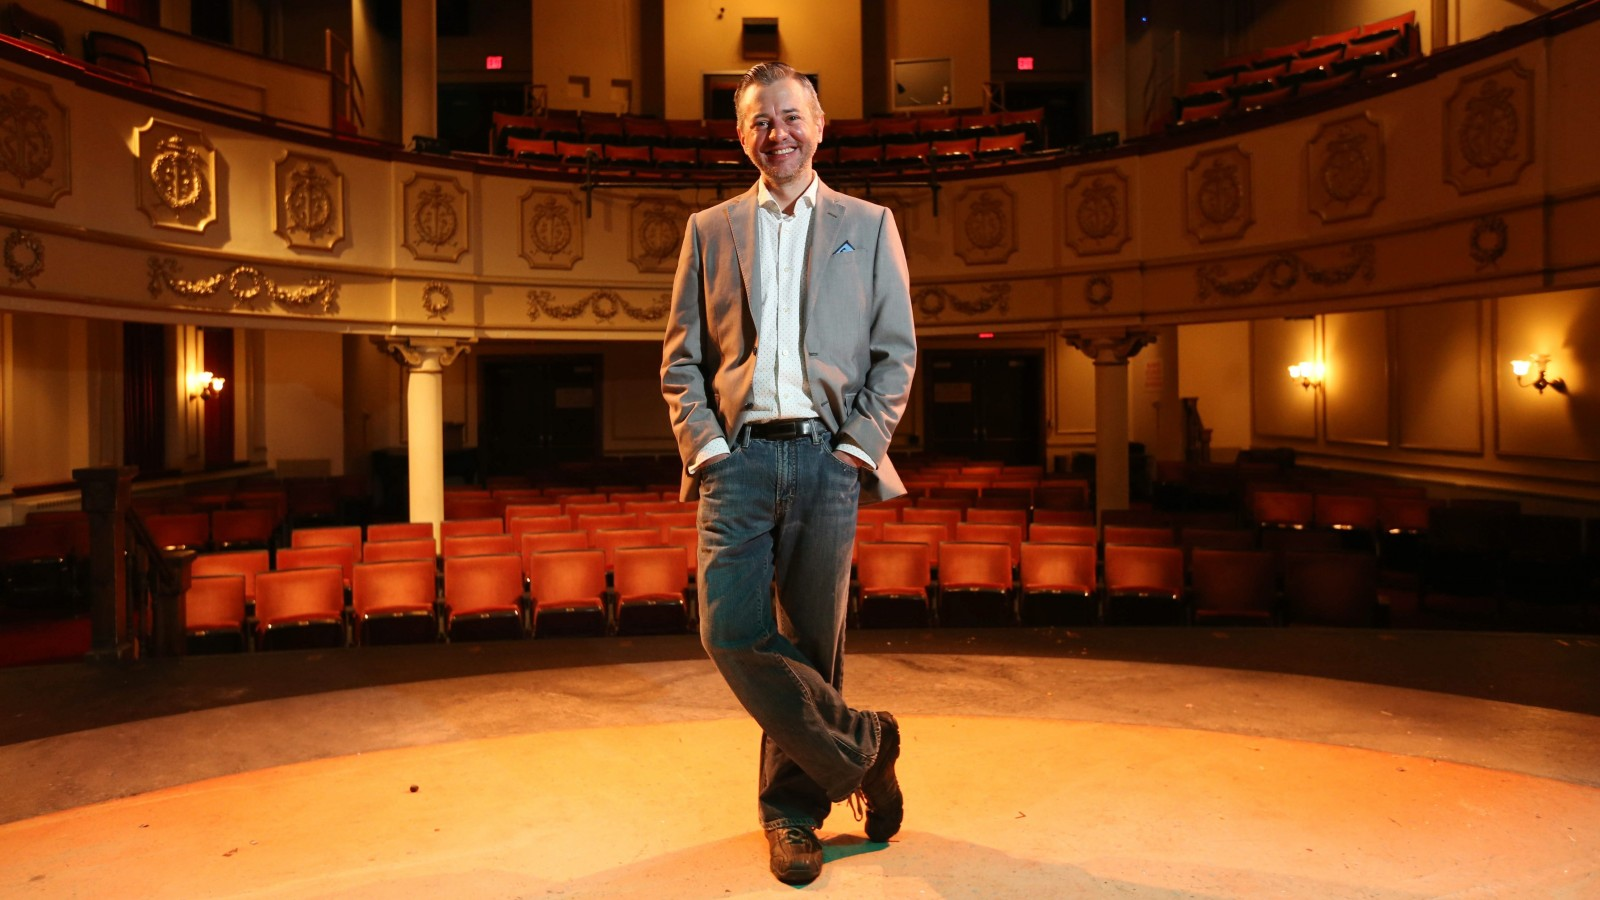 Last week, Joseph Demerly announced that he was leaving his position as managing director of the Kavinoky Theatre and heading to the League of Charleston Theatres in South Carolina. 'His tenure here deserves an extended standing ovation, a four-star review, a bevy of Artie Awards and all the good wishes we can possibly muster,' writes Colin Dabkowski.